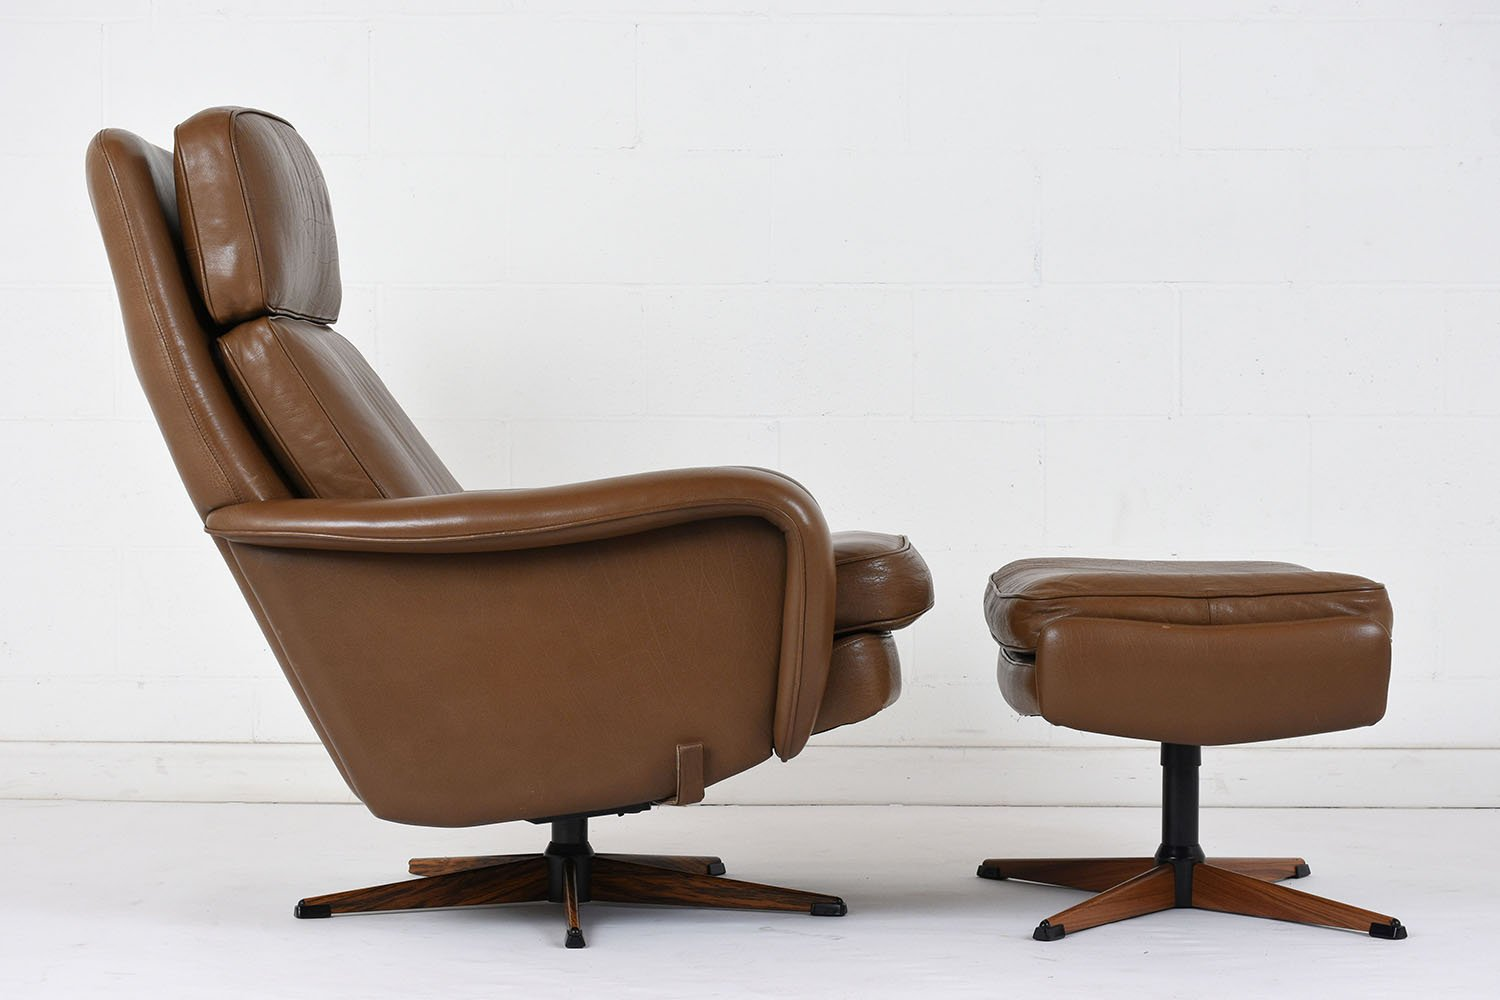 Amazing Vintage Leather Lounge Chair And Ottoman, 1960s